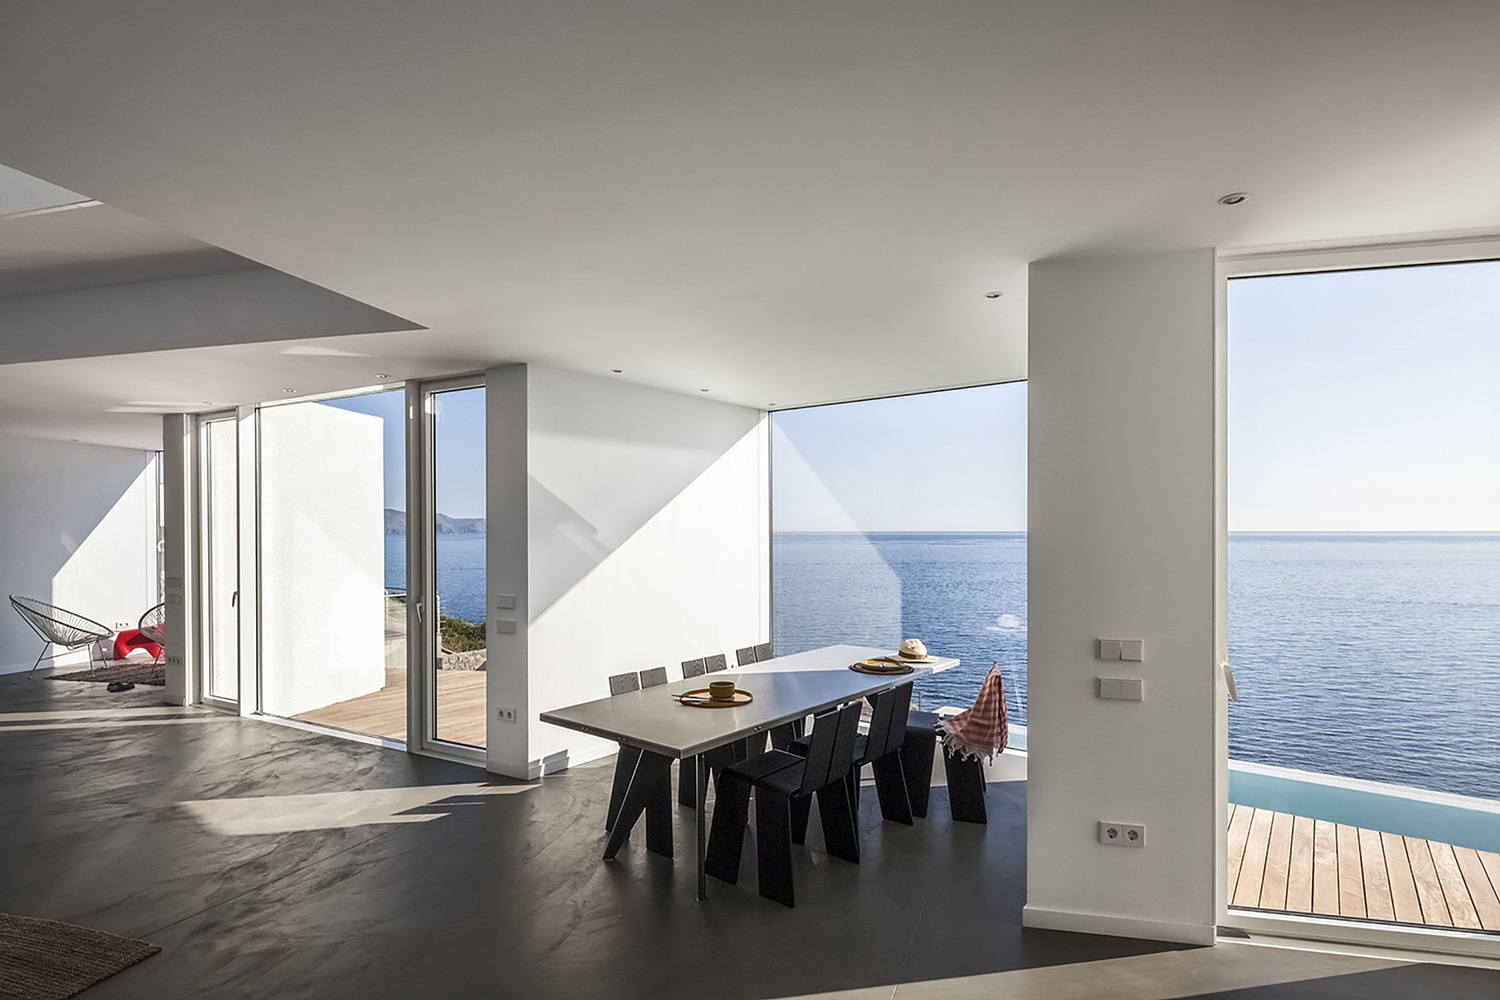 House in Costa Brava Sunflower House by Studio Cadaval + Sola Morales | Yellowtrace